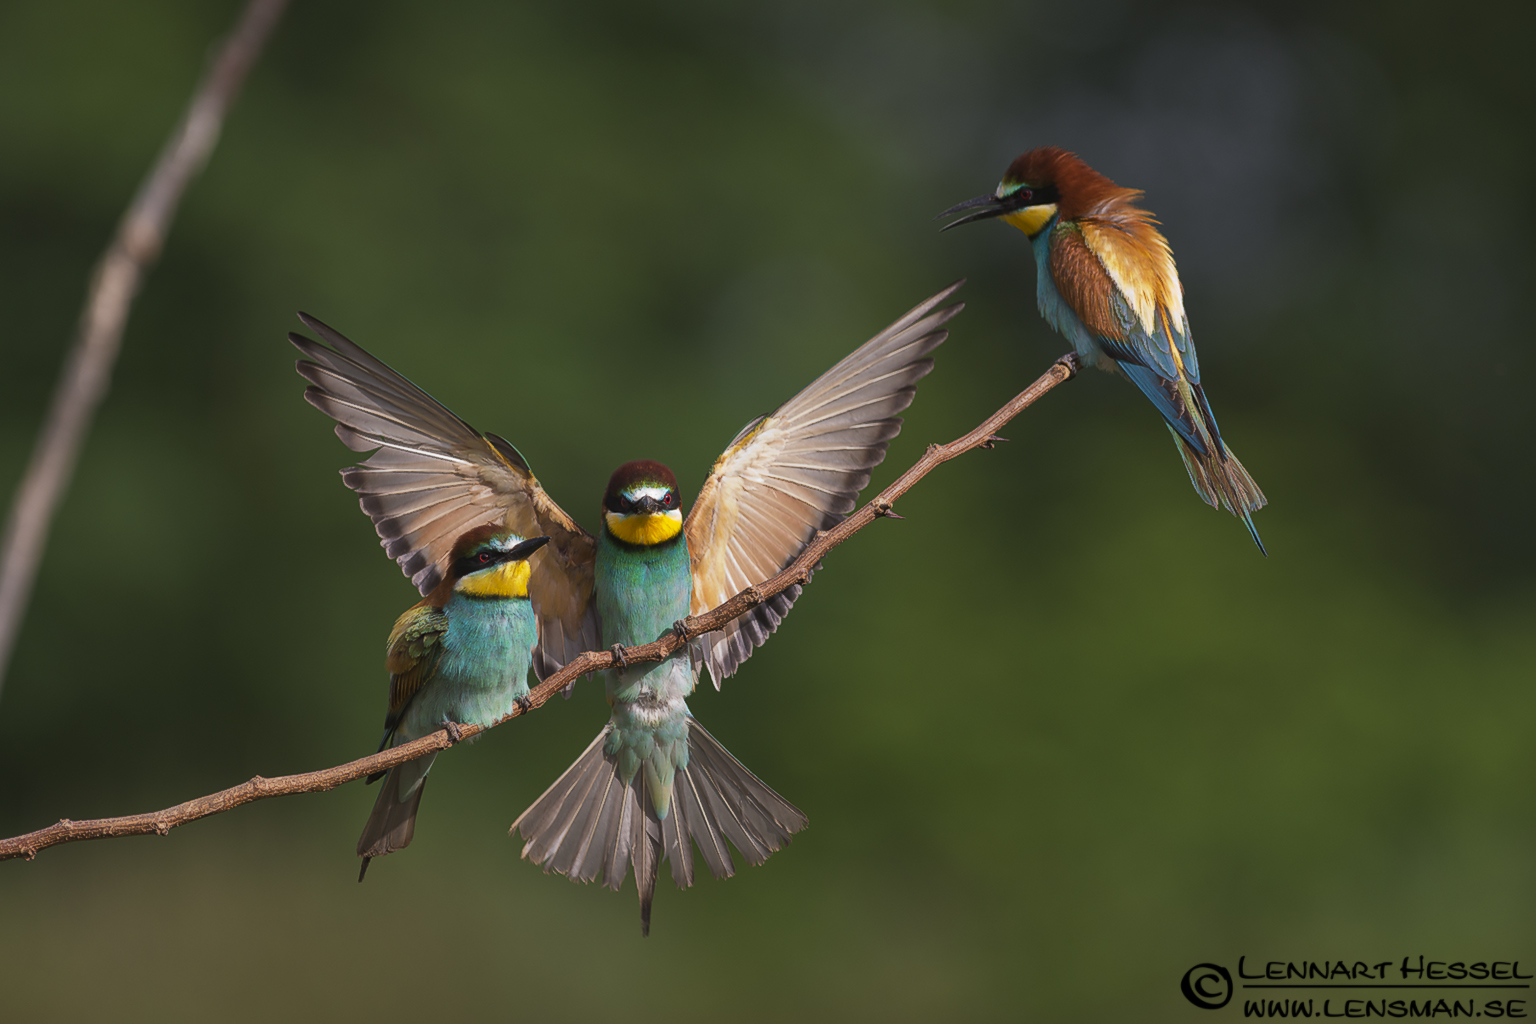 European Bee-eater in Hungary